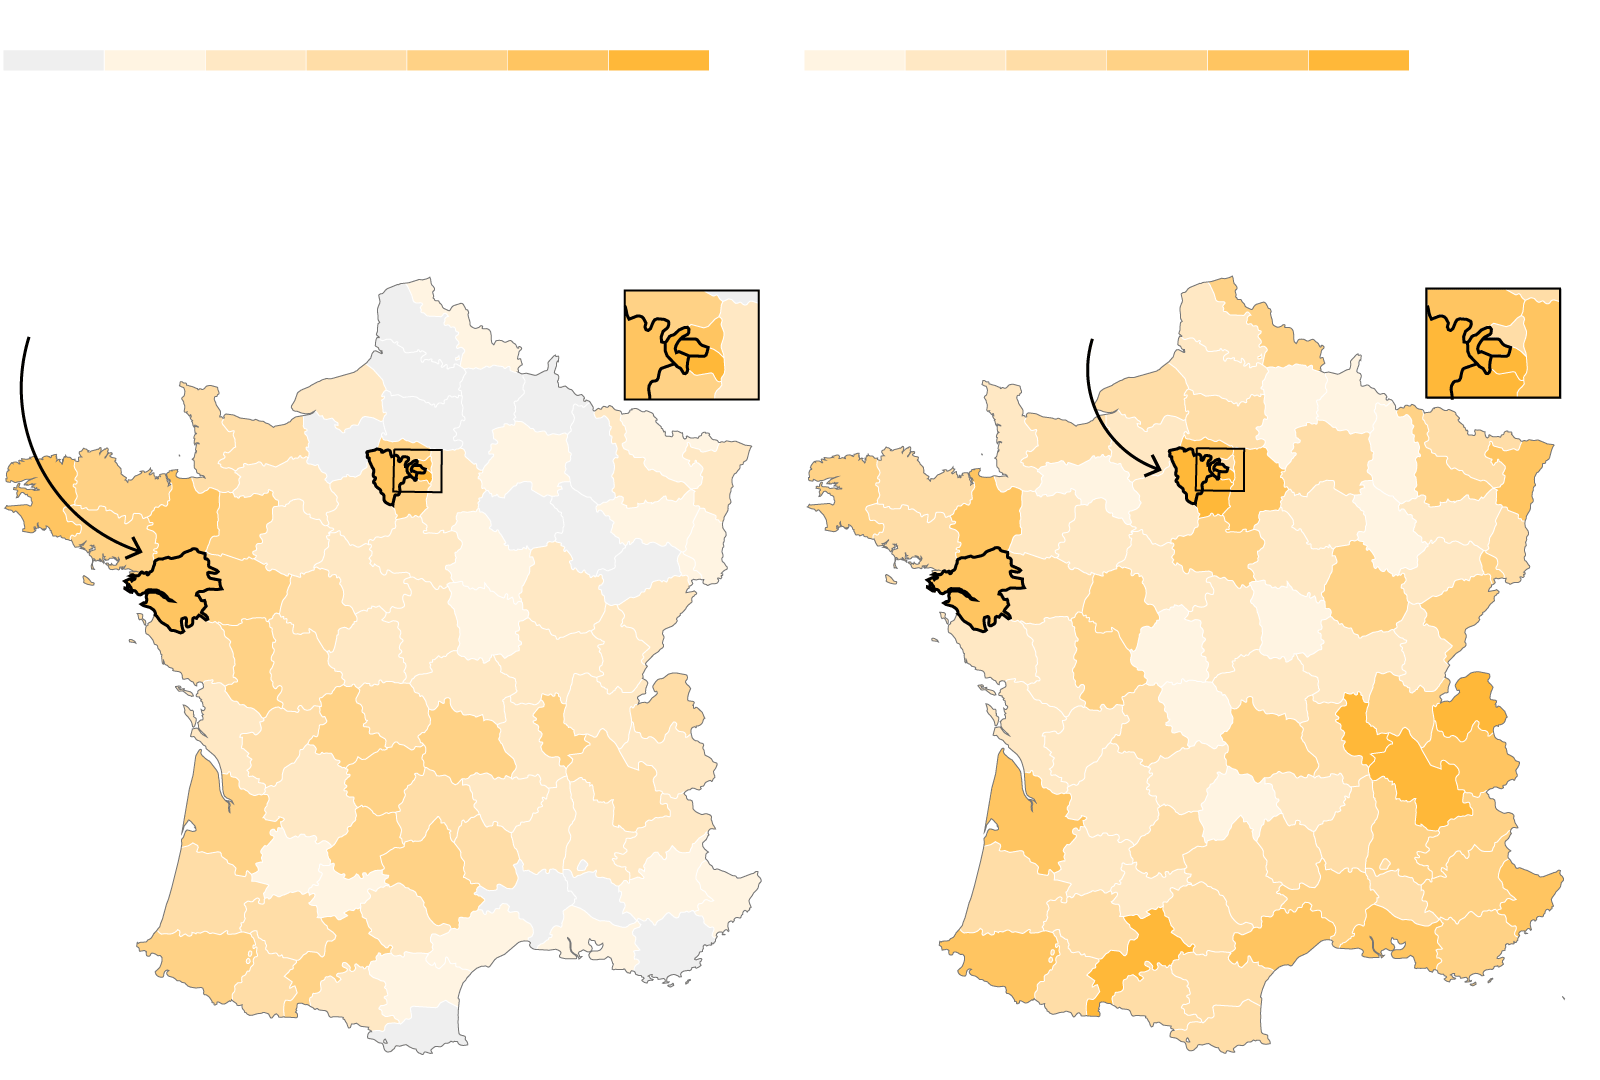 Macron Share Of Vote In The Second Round